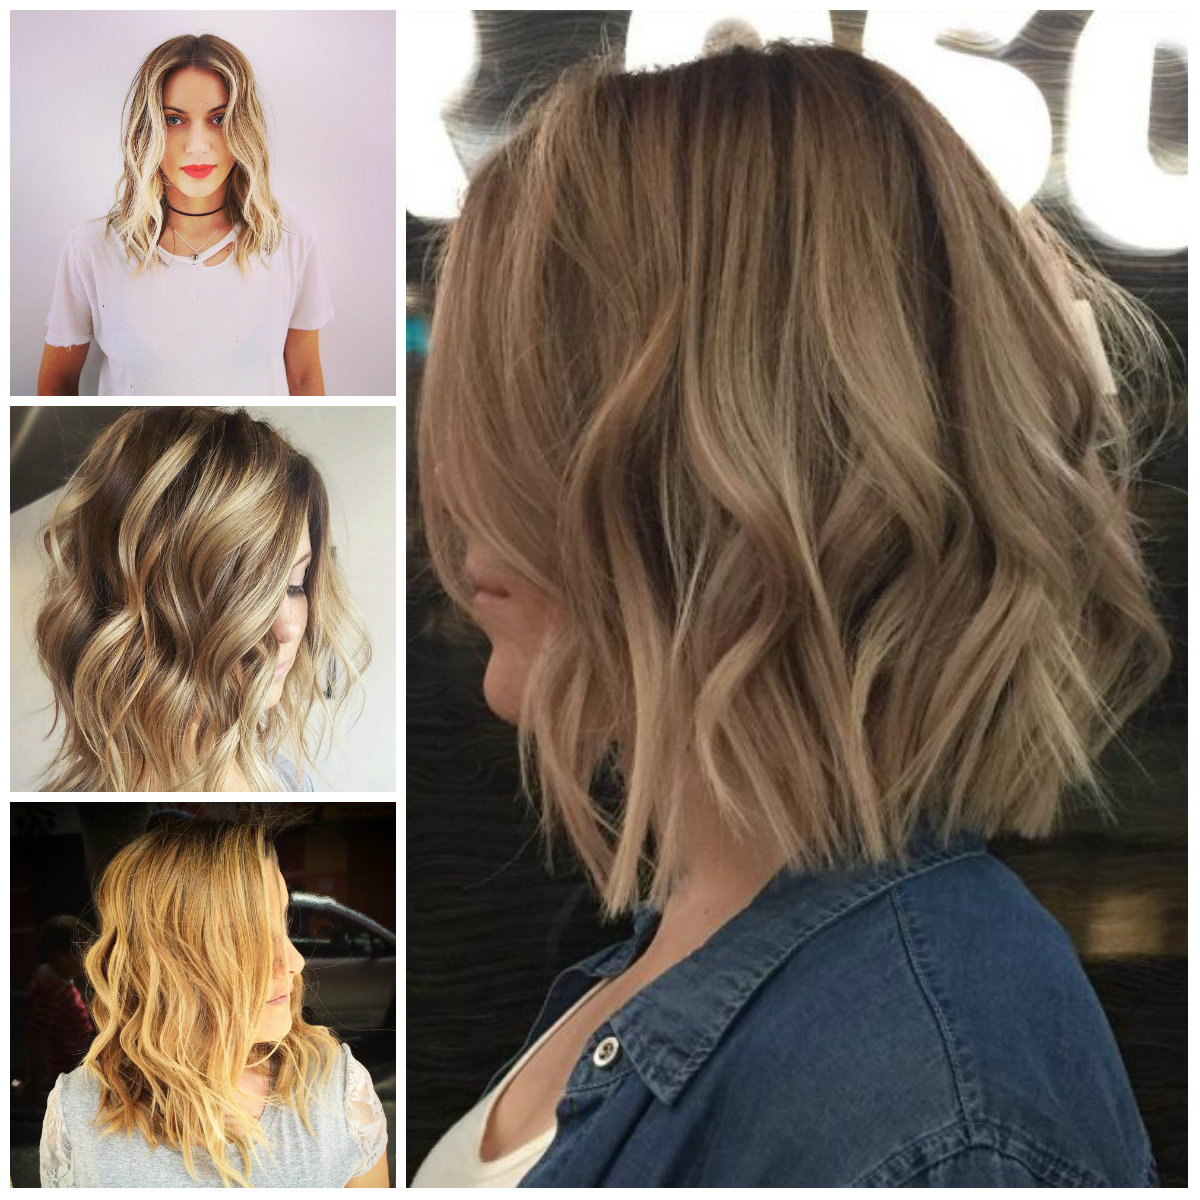 Hair color | 2017 Haircuts, Hairstyles and Hair Colors